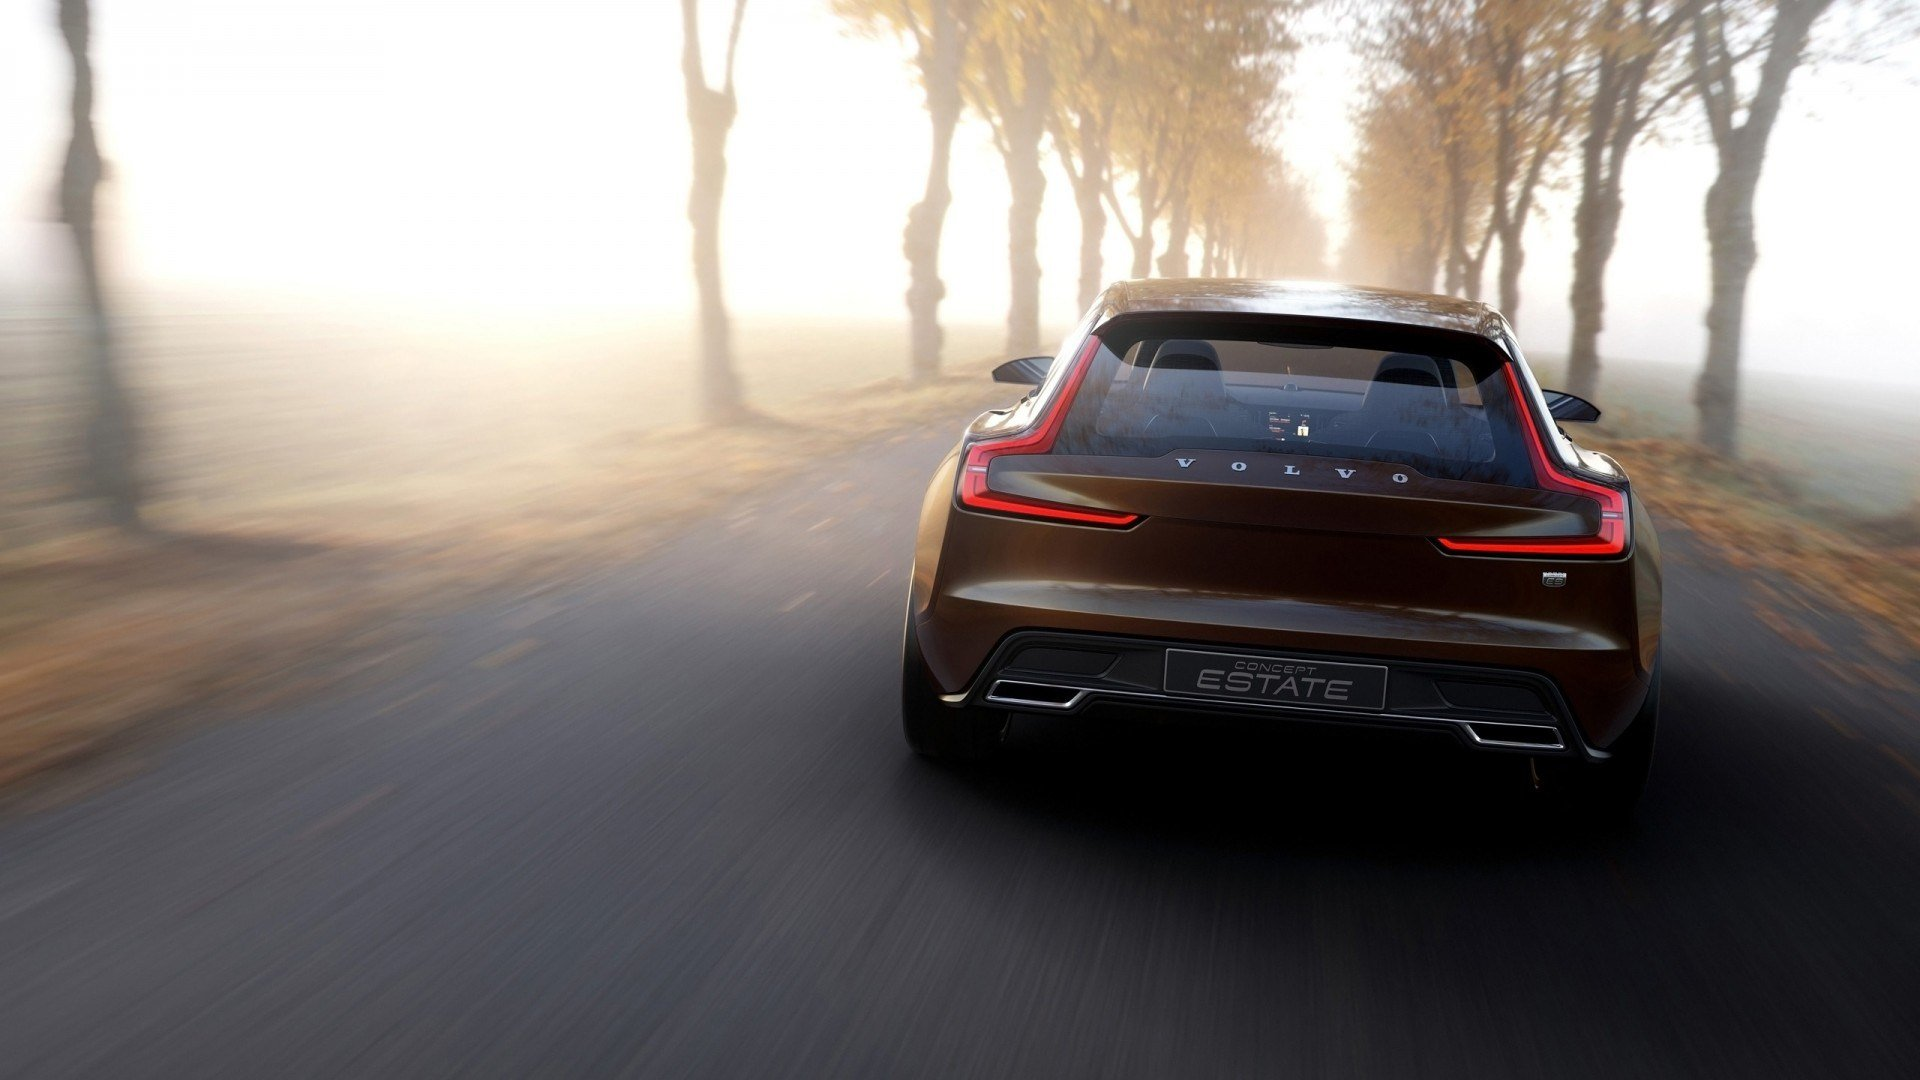 New 2014 Volvo Concept Estate 2 Wallpaper Hd Car Wallpapers On This Month